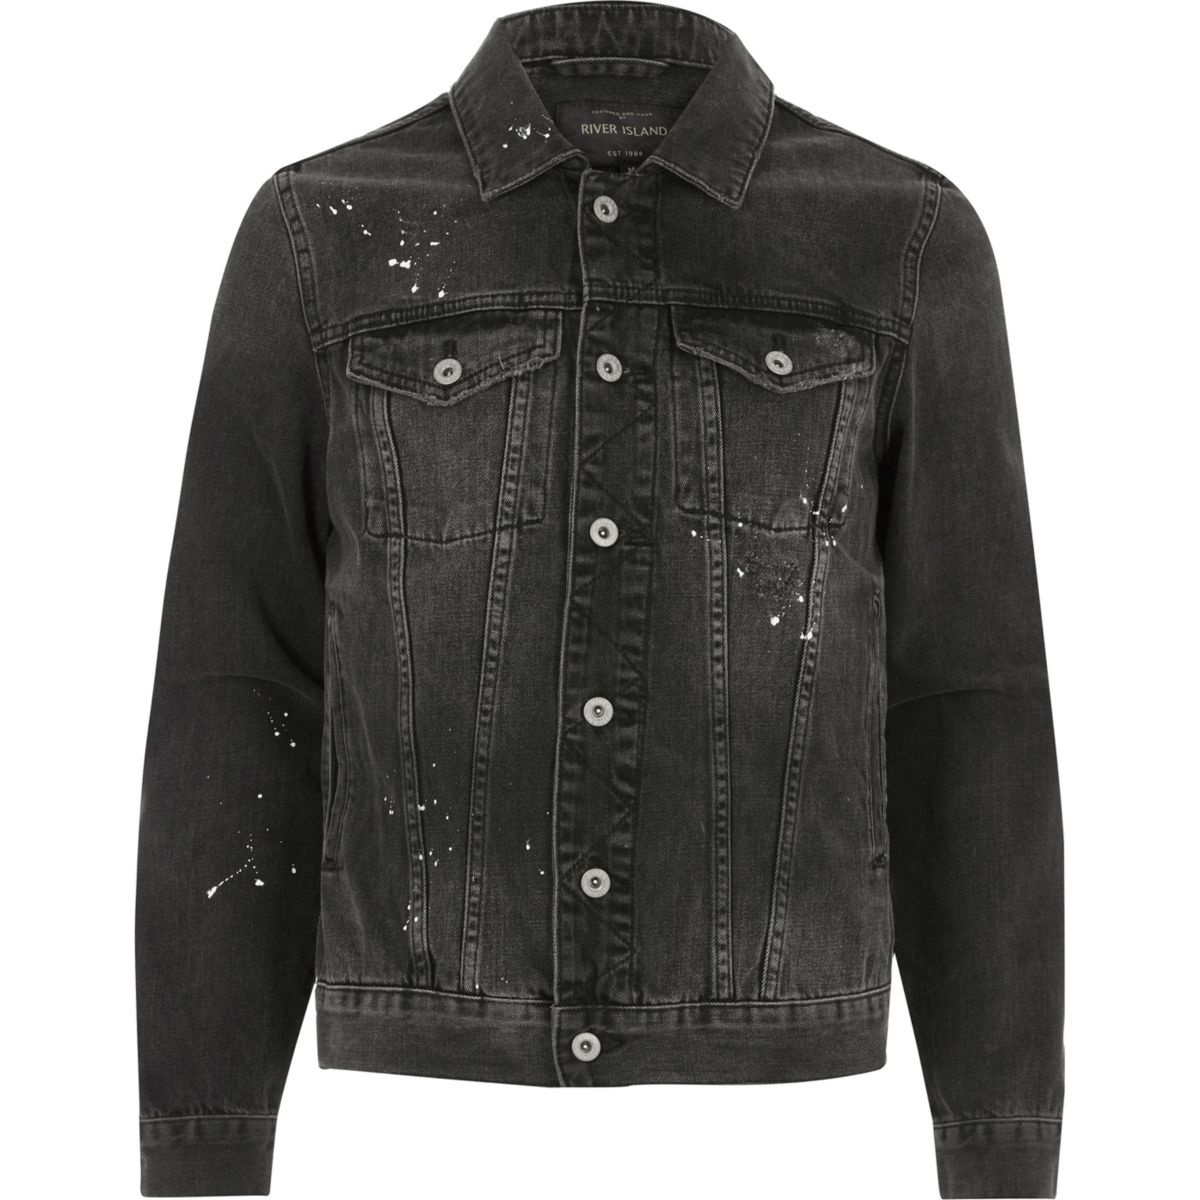 Charcoal grey paint splatter denim jacket - Coats & Jackets - Sale ...